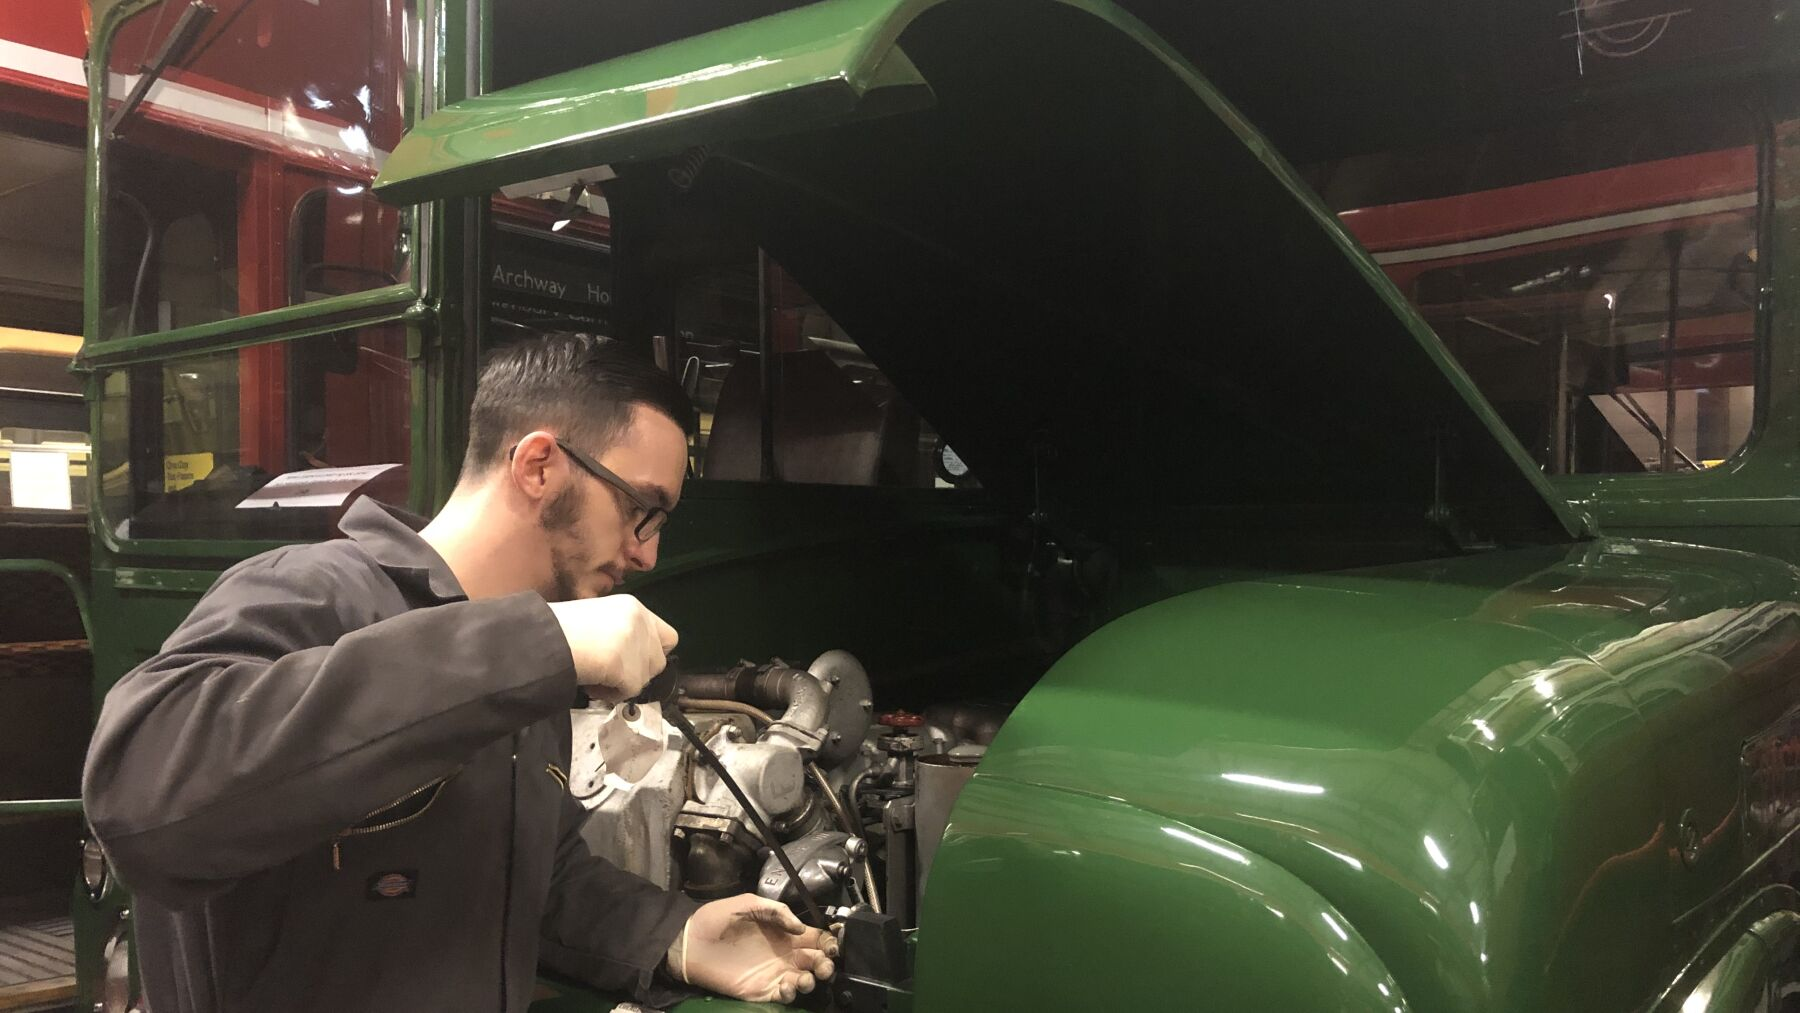 Alex checking the oil levels on a vintage London bus